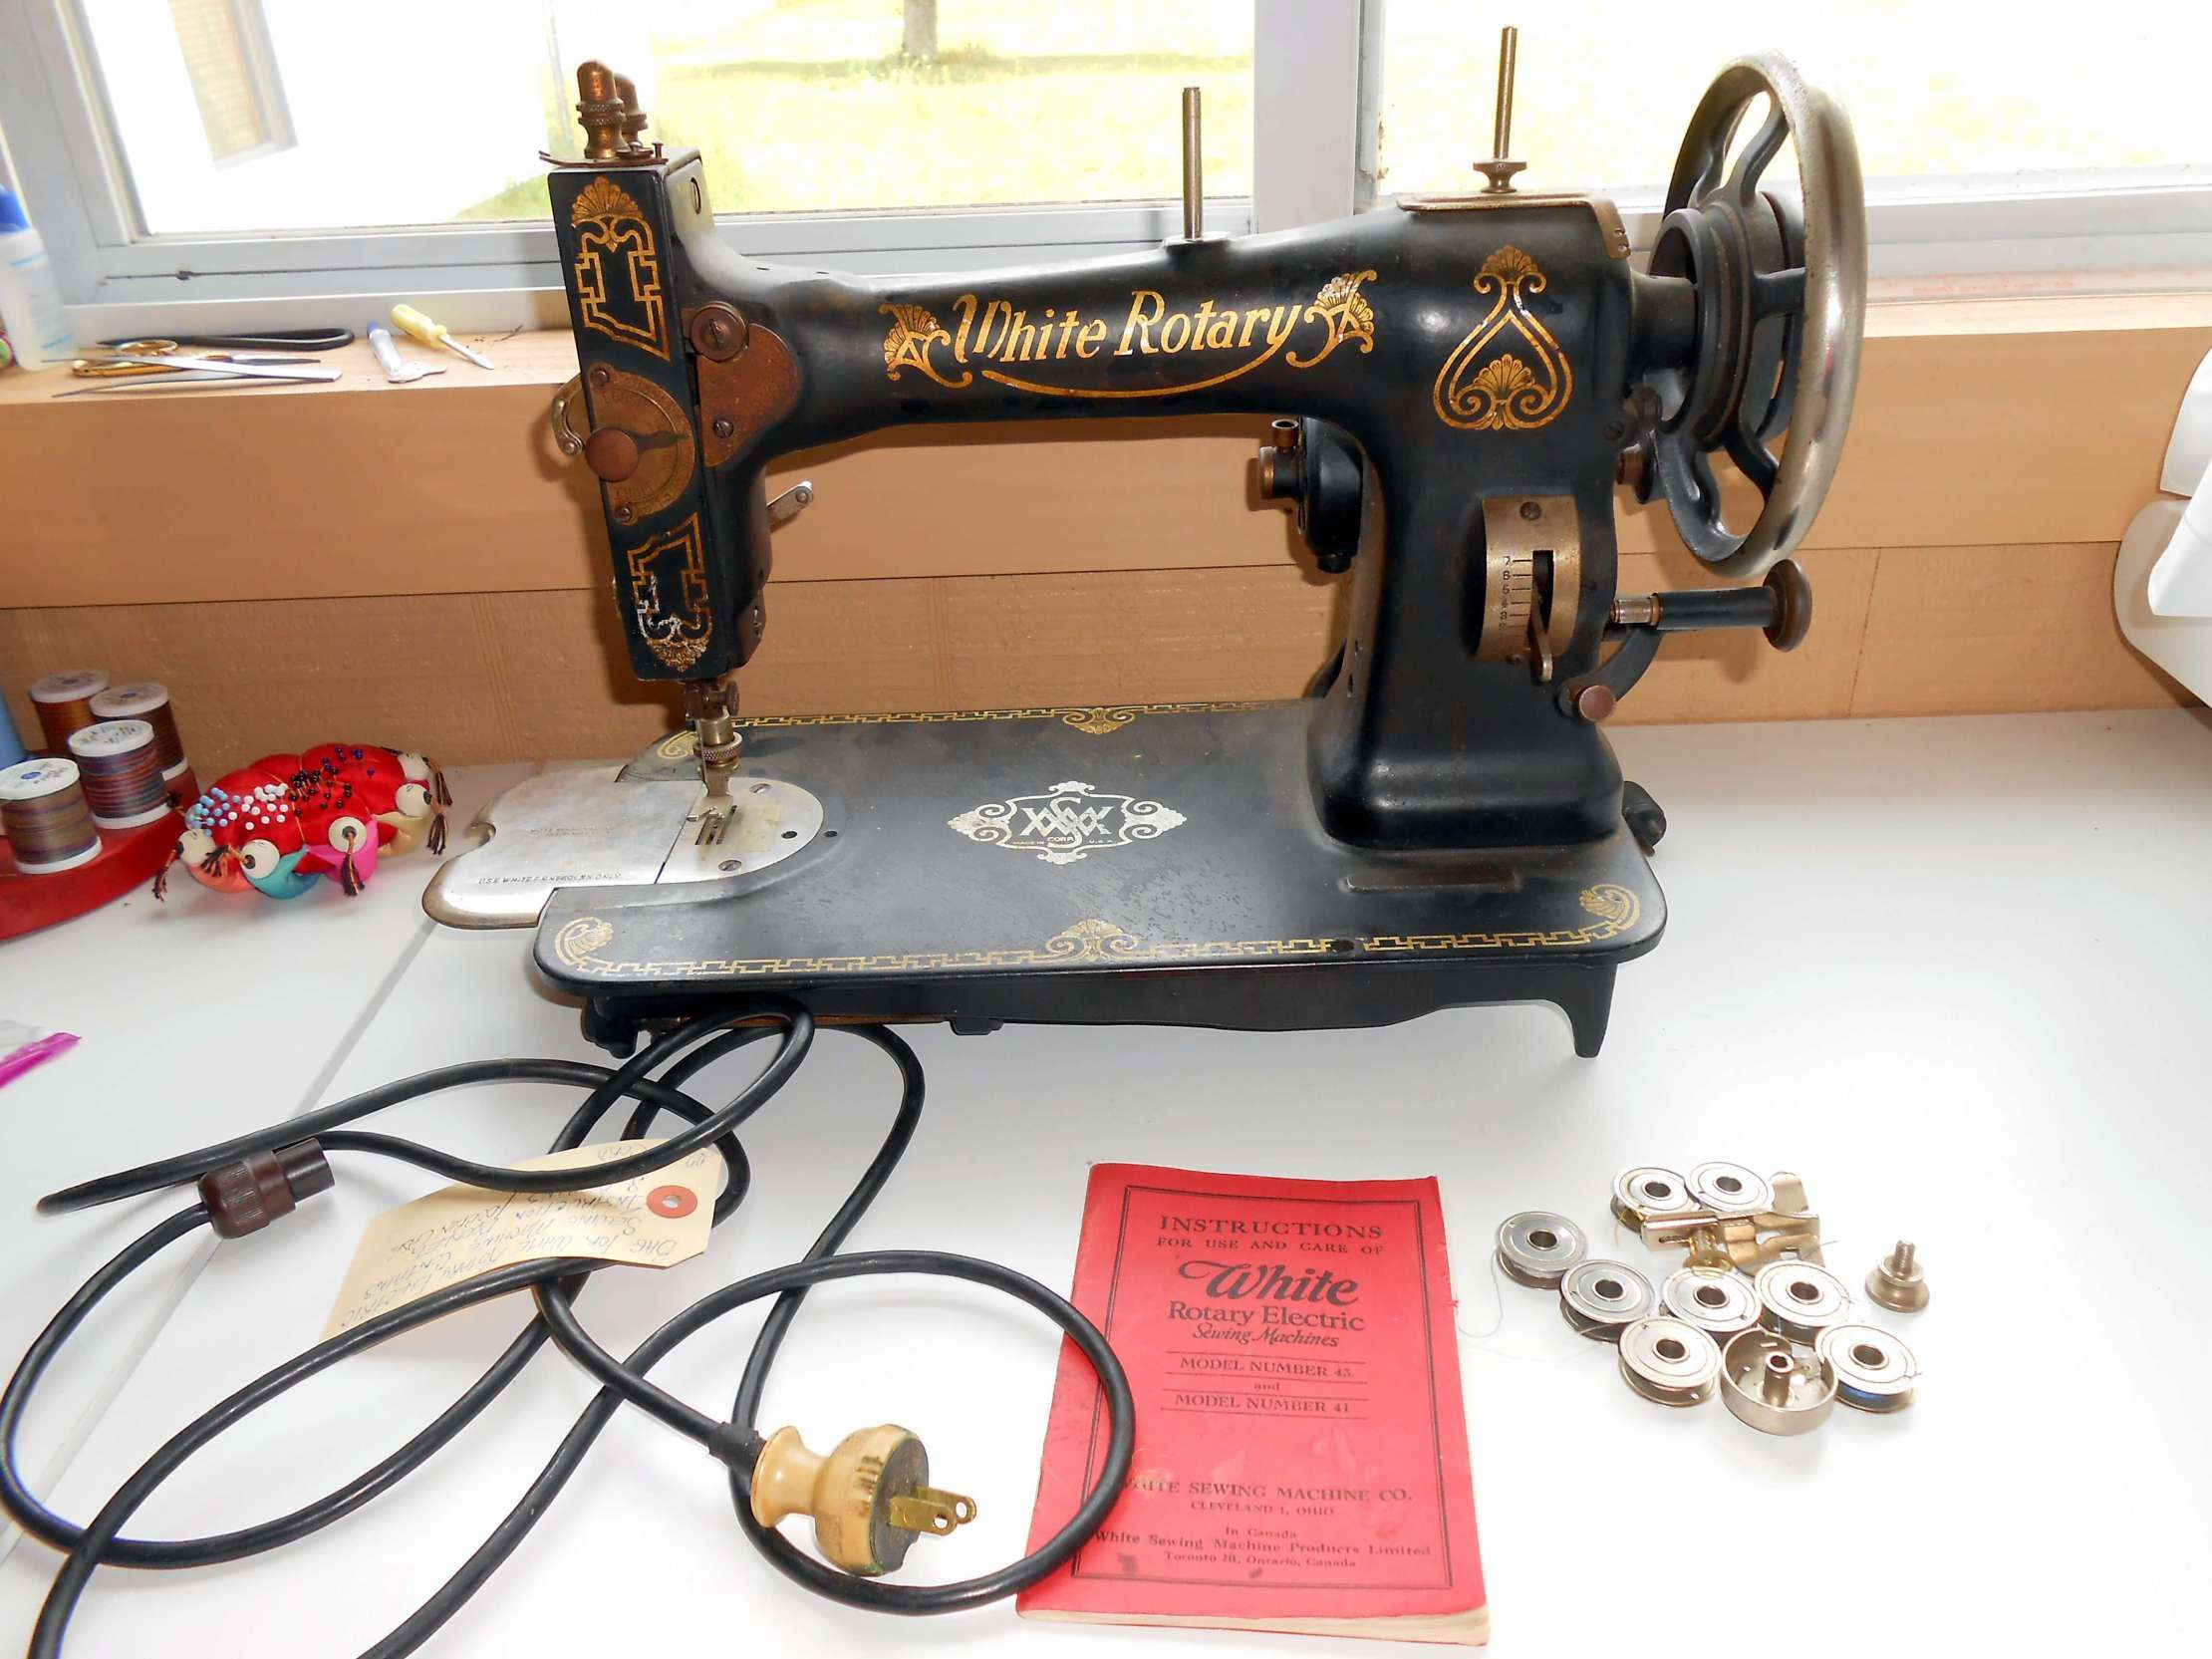 White Rotary Sewing Machine: What Needle to Use   White ...